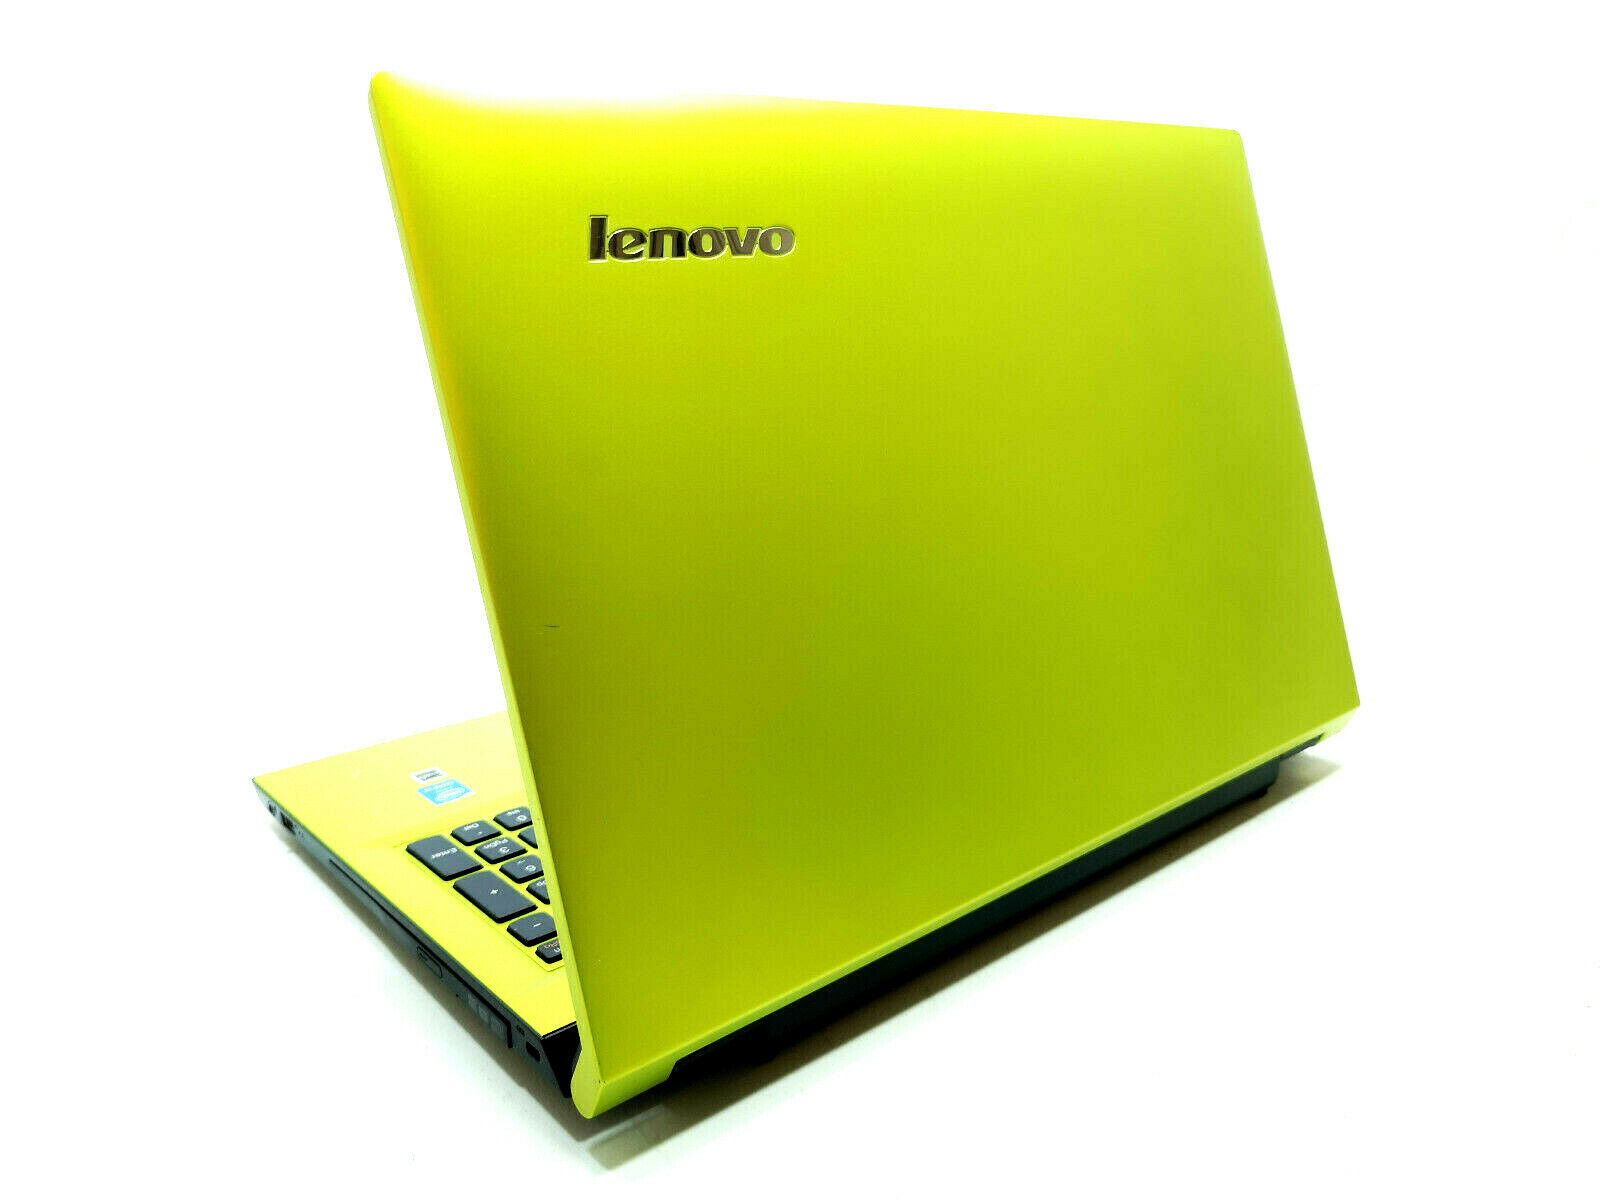 Lenovo IdeaPad 305 No 6